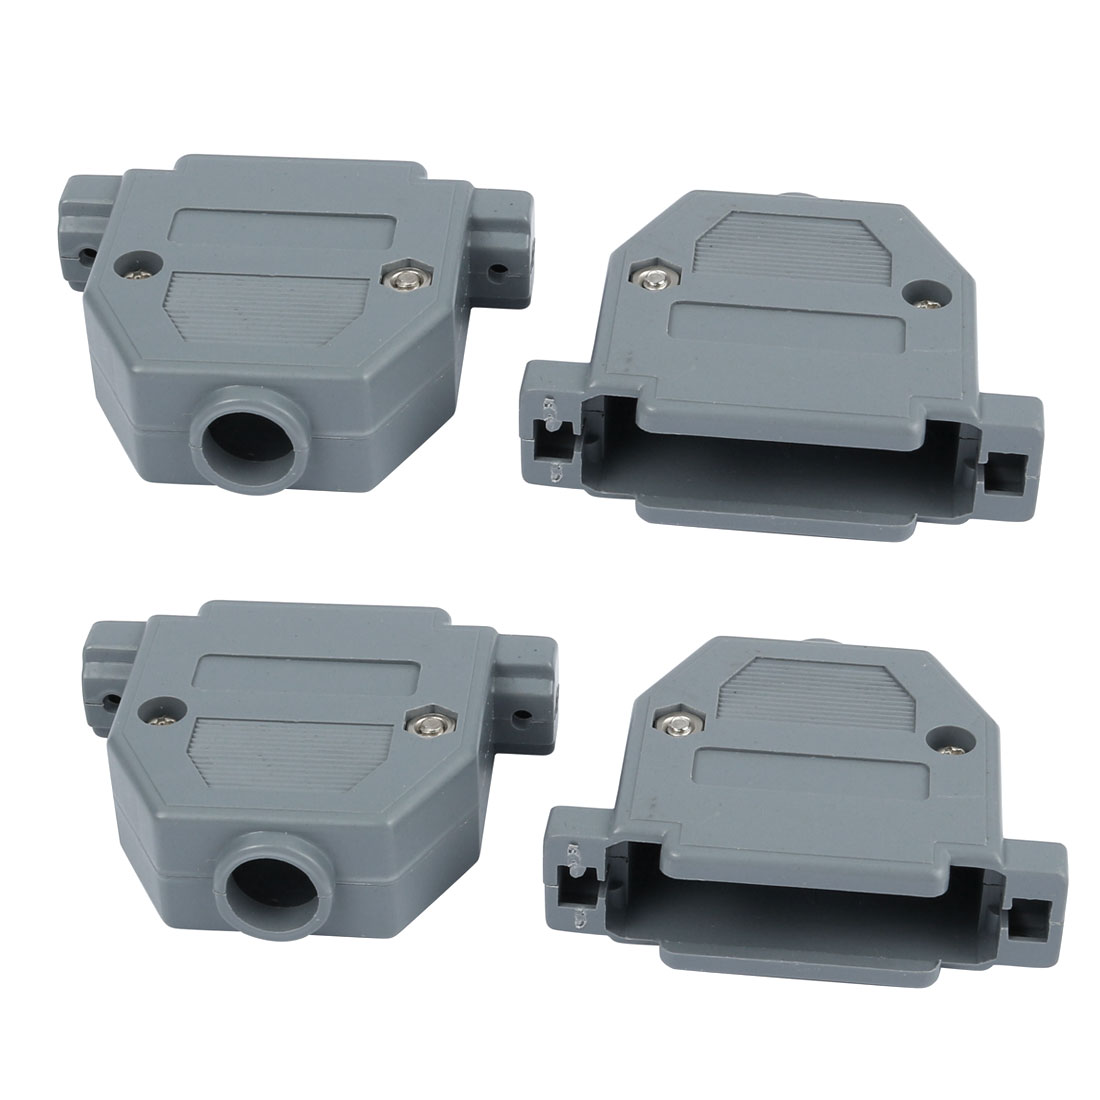 4pcs DB25 Port D-Sub Connector Kit Cover House Assembly Shell Plastic Hood Gray